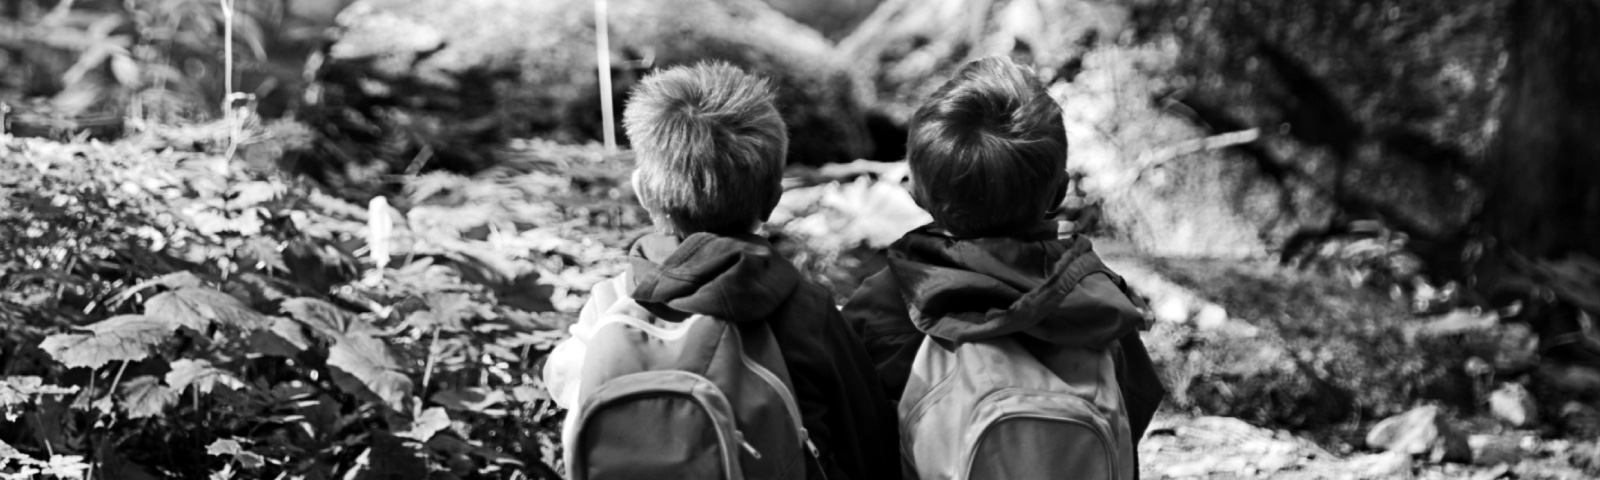 Two kids sitting outside looking into the woods with backpacks on.